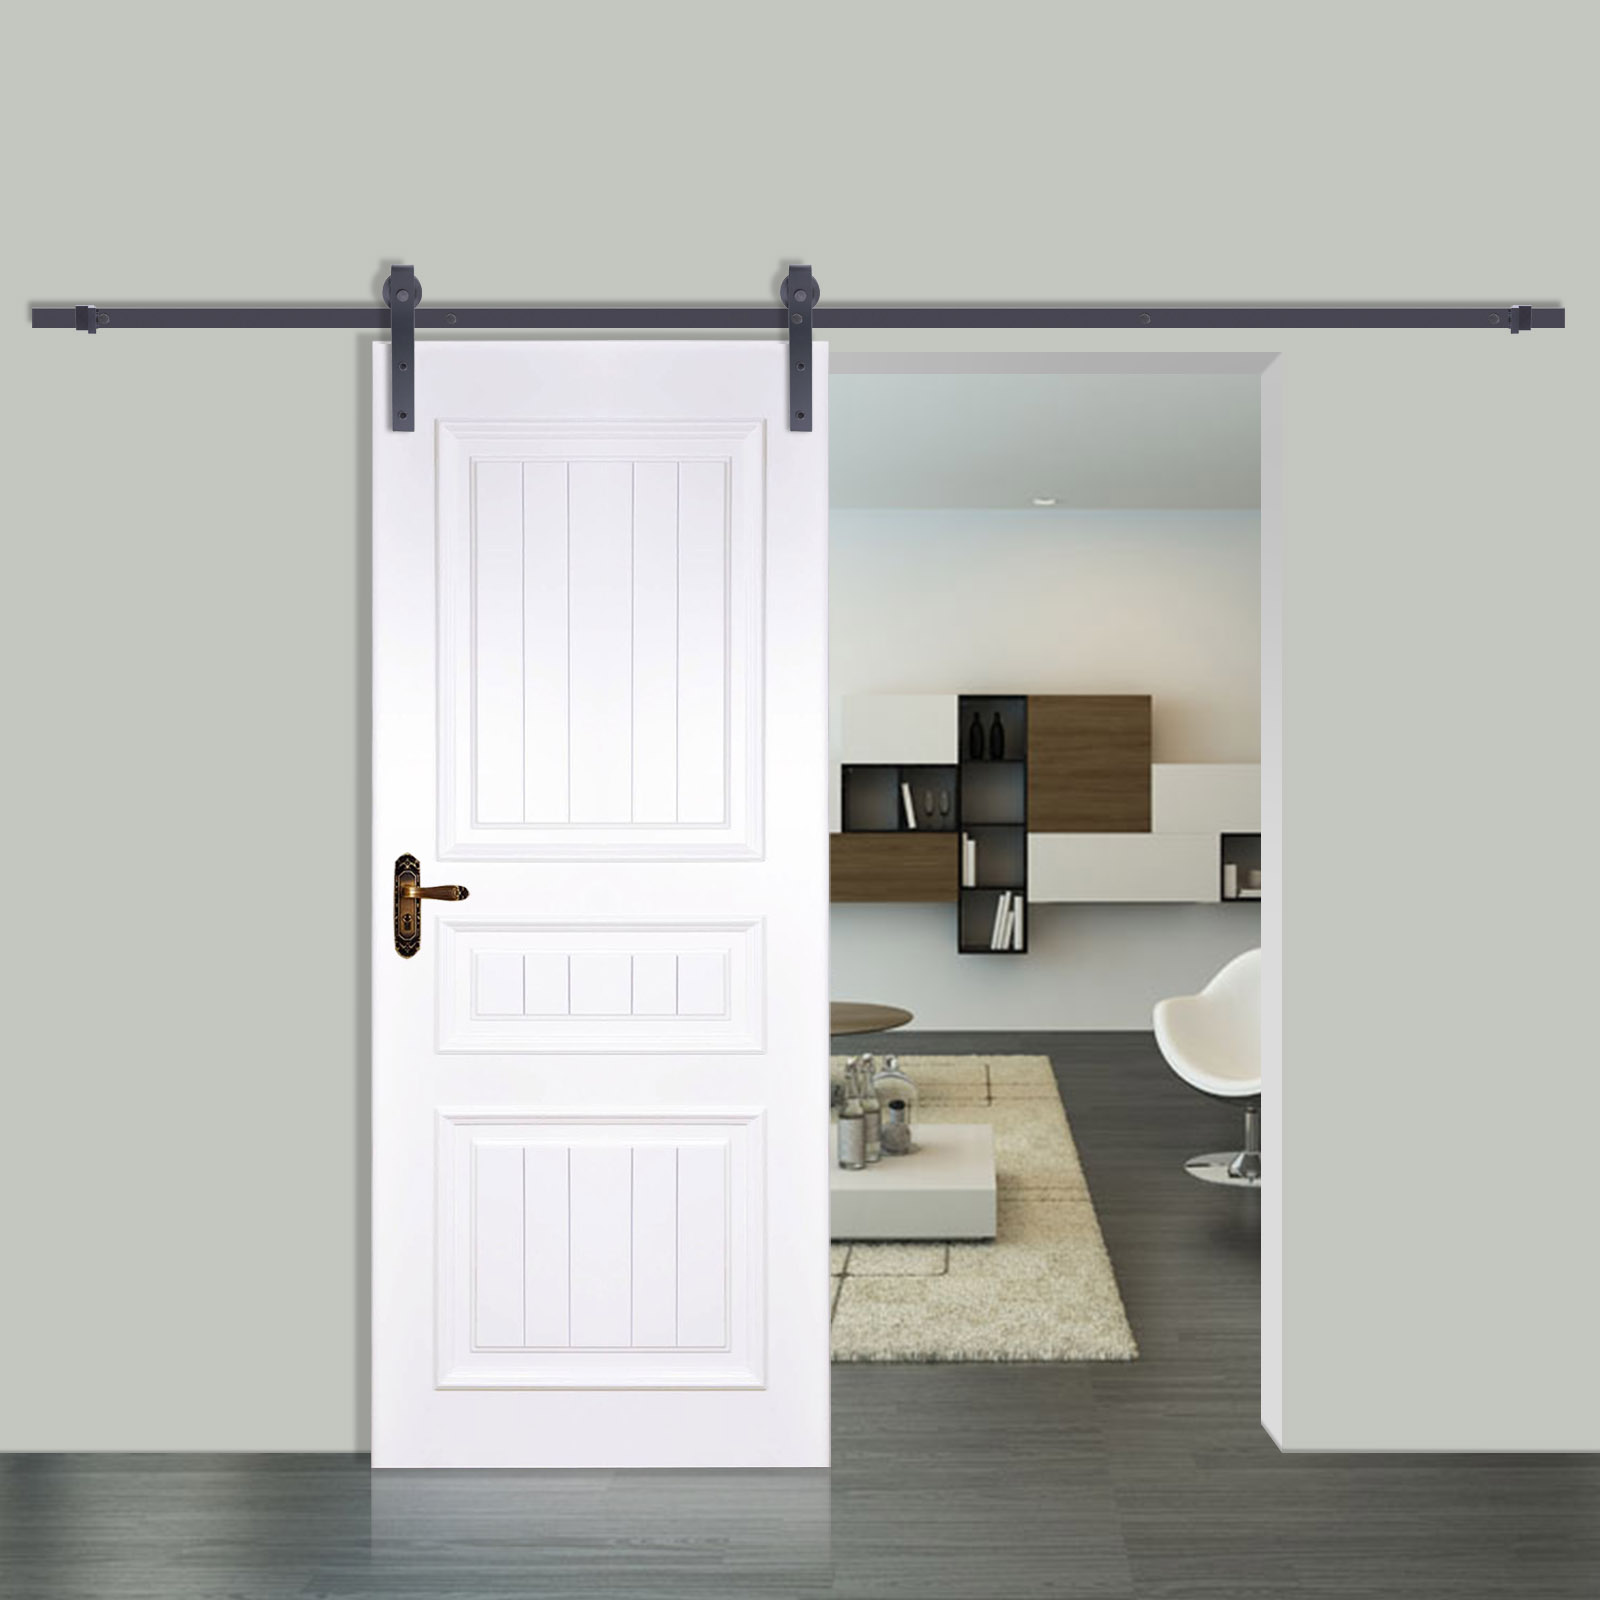 6-6-6-10-12FT-Rustic-Black-Double- : barn door track - pezcame.com